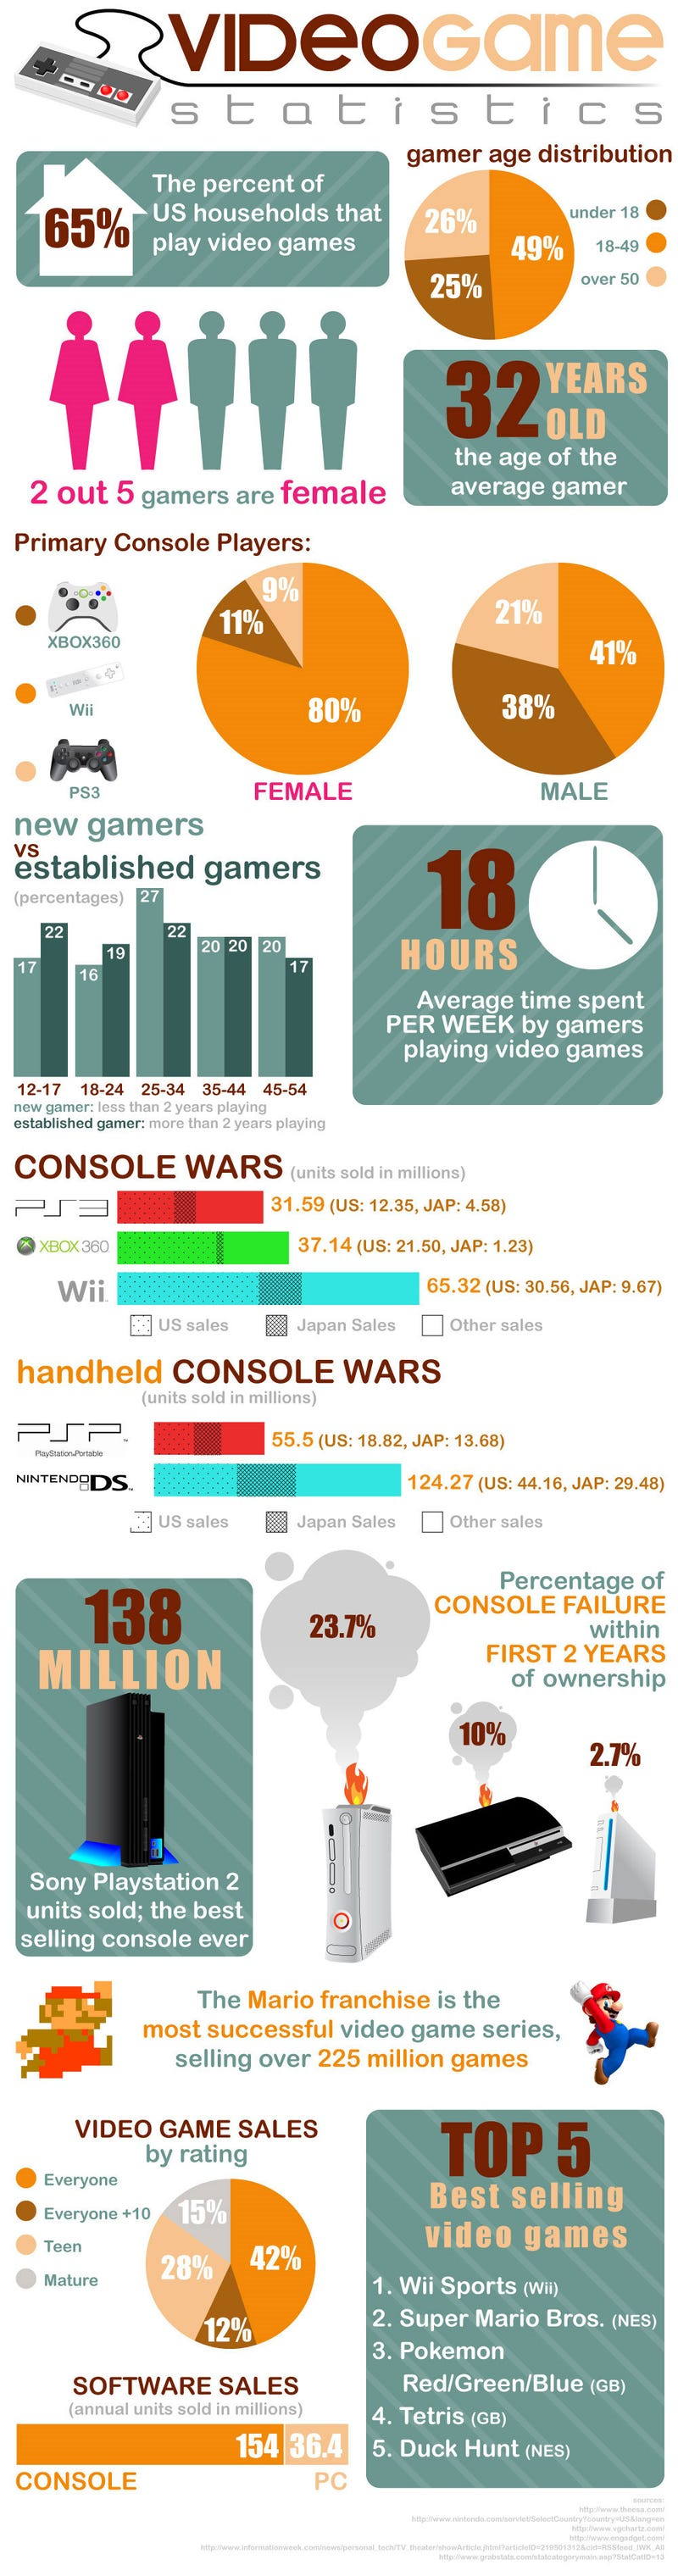 Video Game Statistics At A Glance